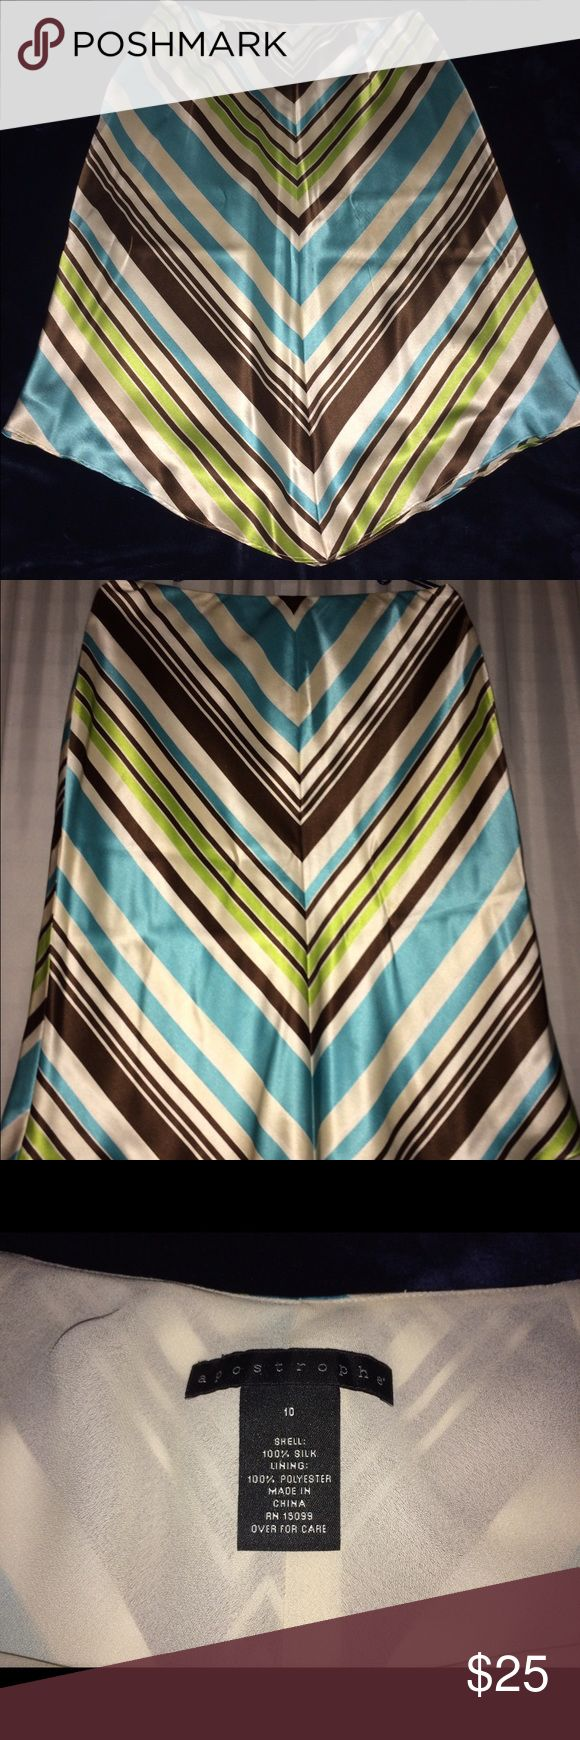 Apostrophe 100% Pure Silk Classy Dress Skirt Apostrophe 100% Pure Silk Classy Dress Skirt, very soft and silky, and in excellent condition. Combination of Brown, Blue, White and Green Colors. Aeropostale Skirts Asymmetrical